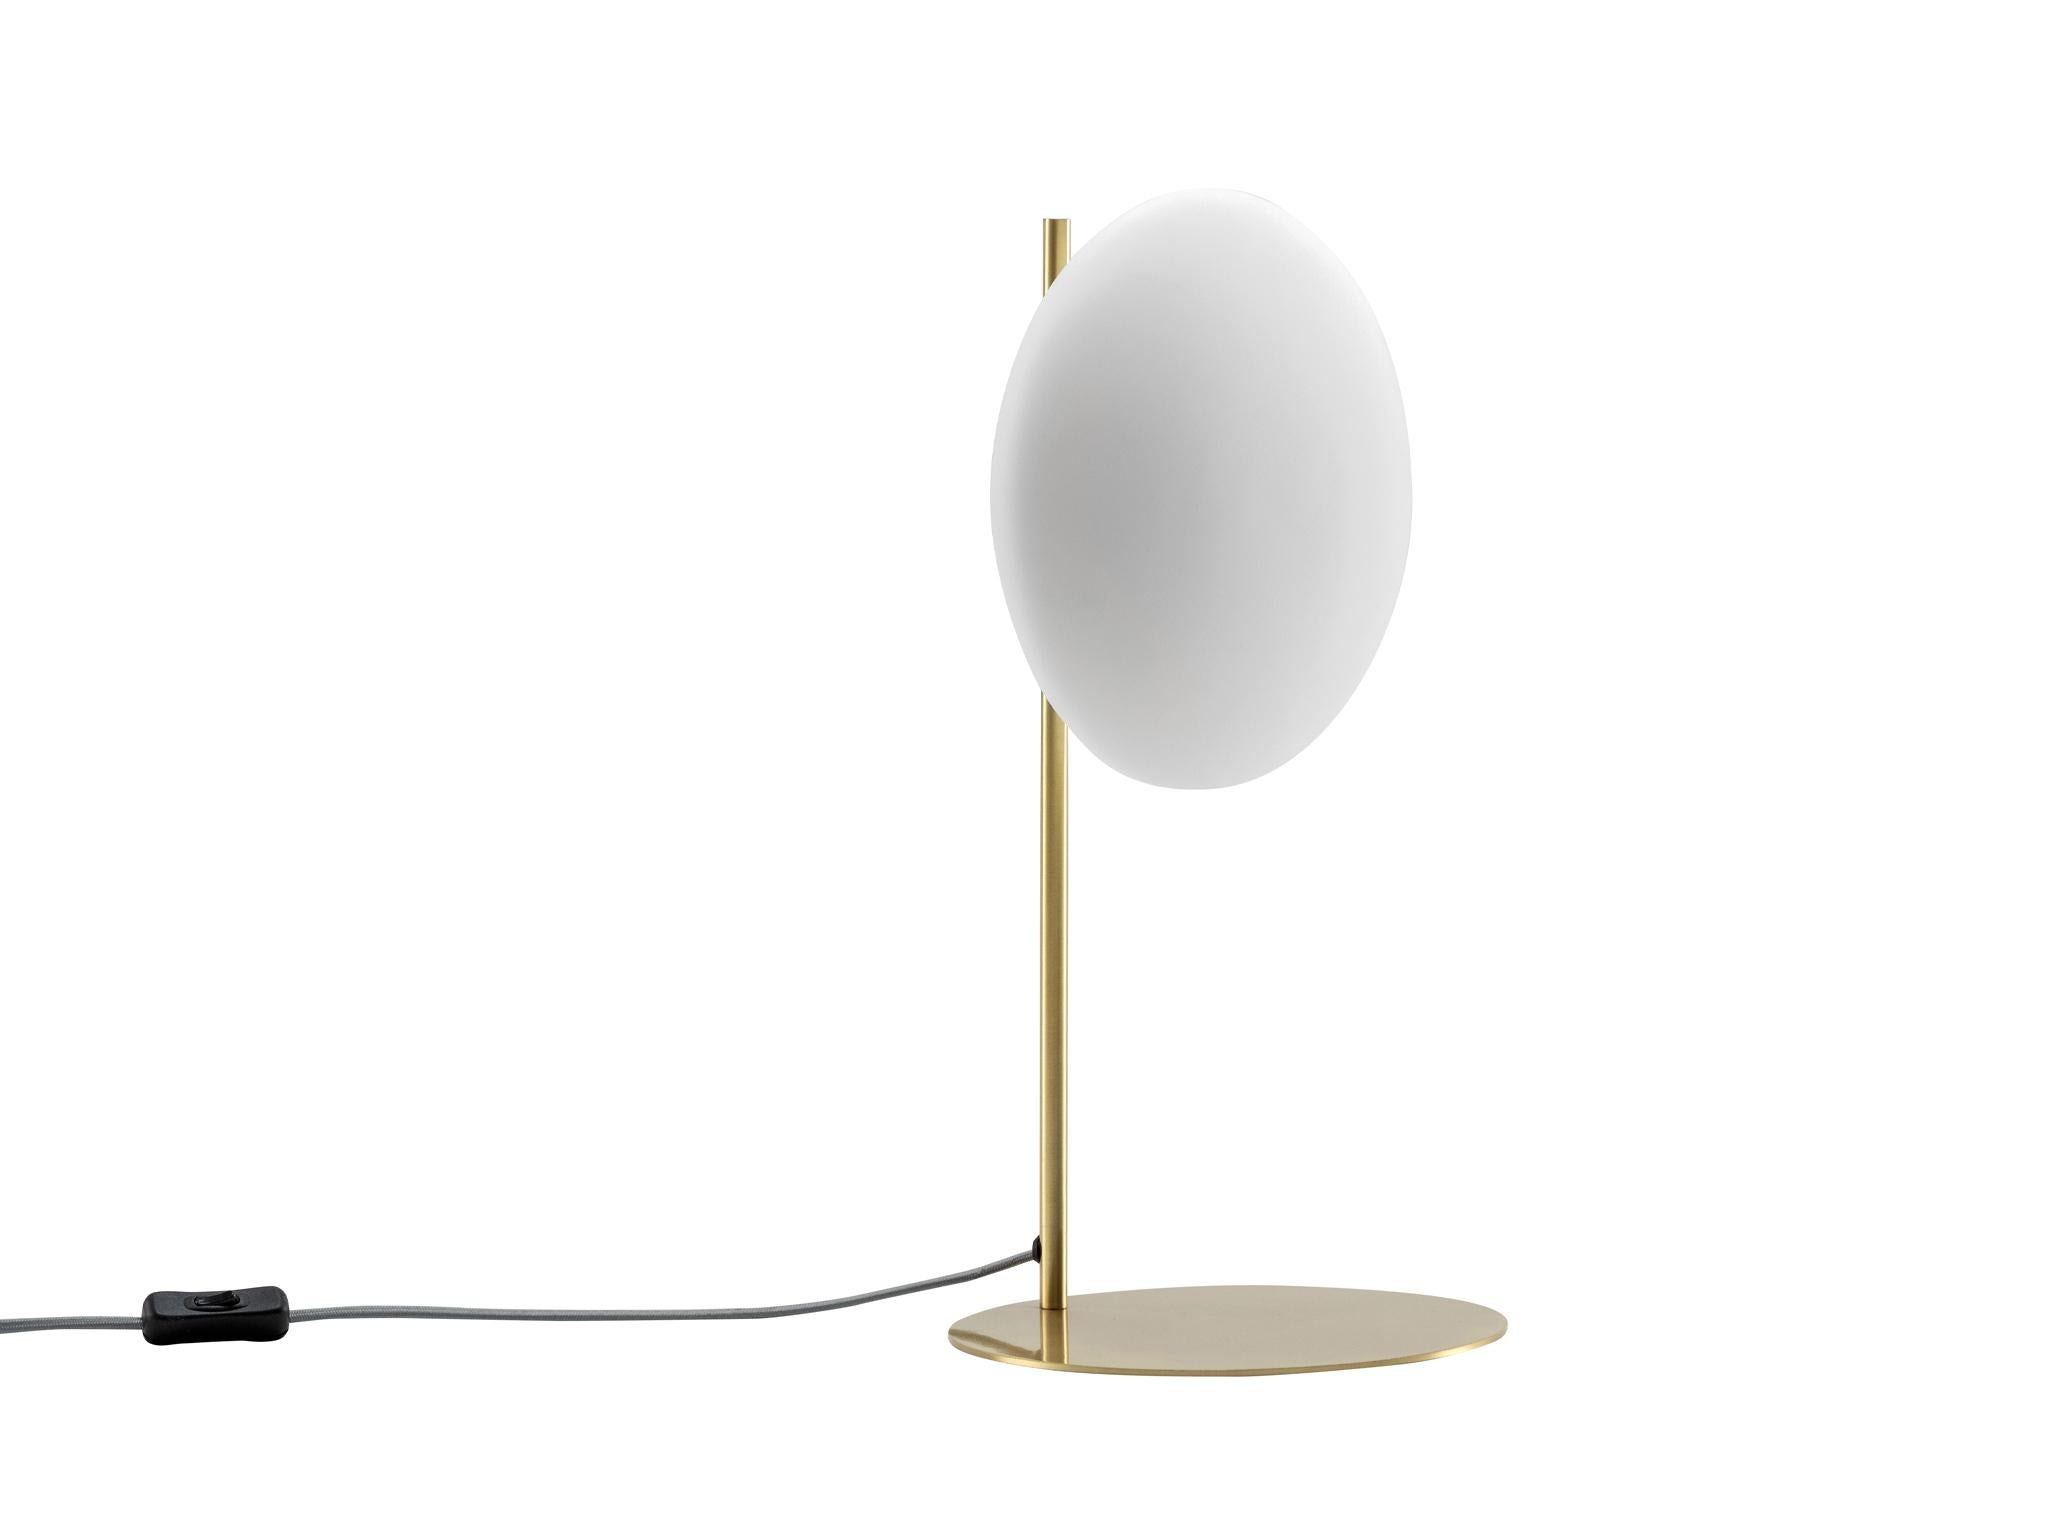 The best bedside lamps 2020 | T3